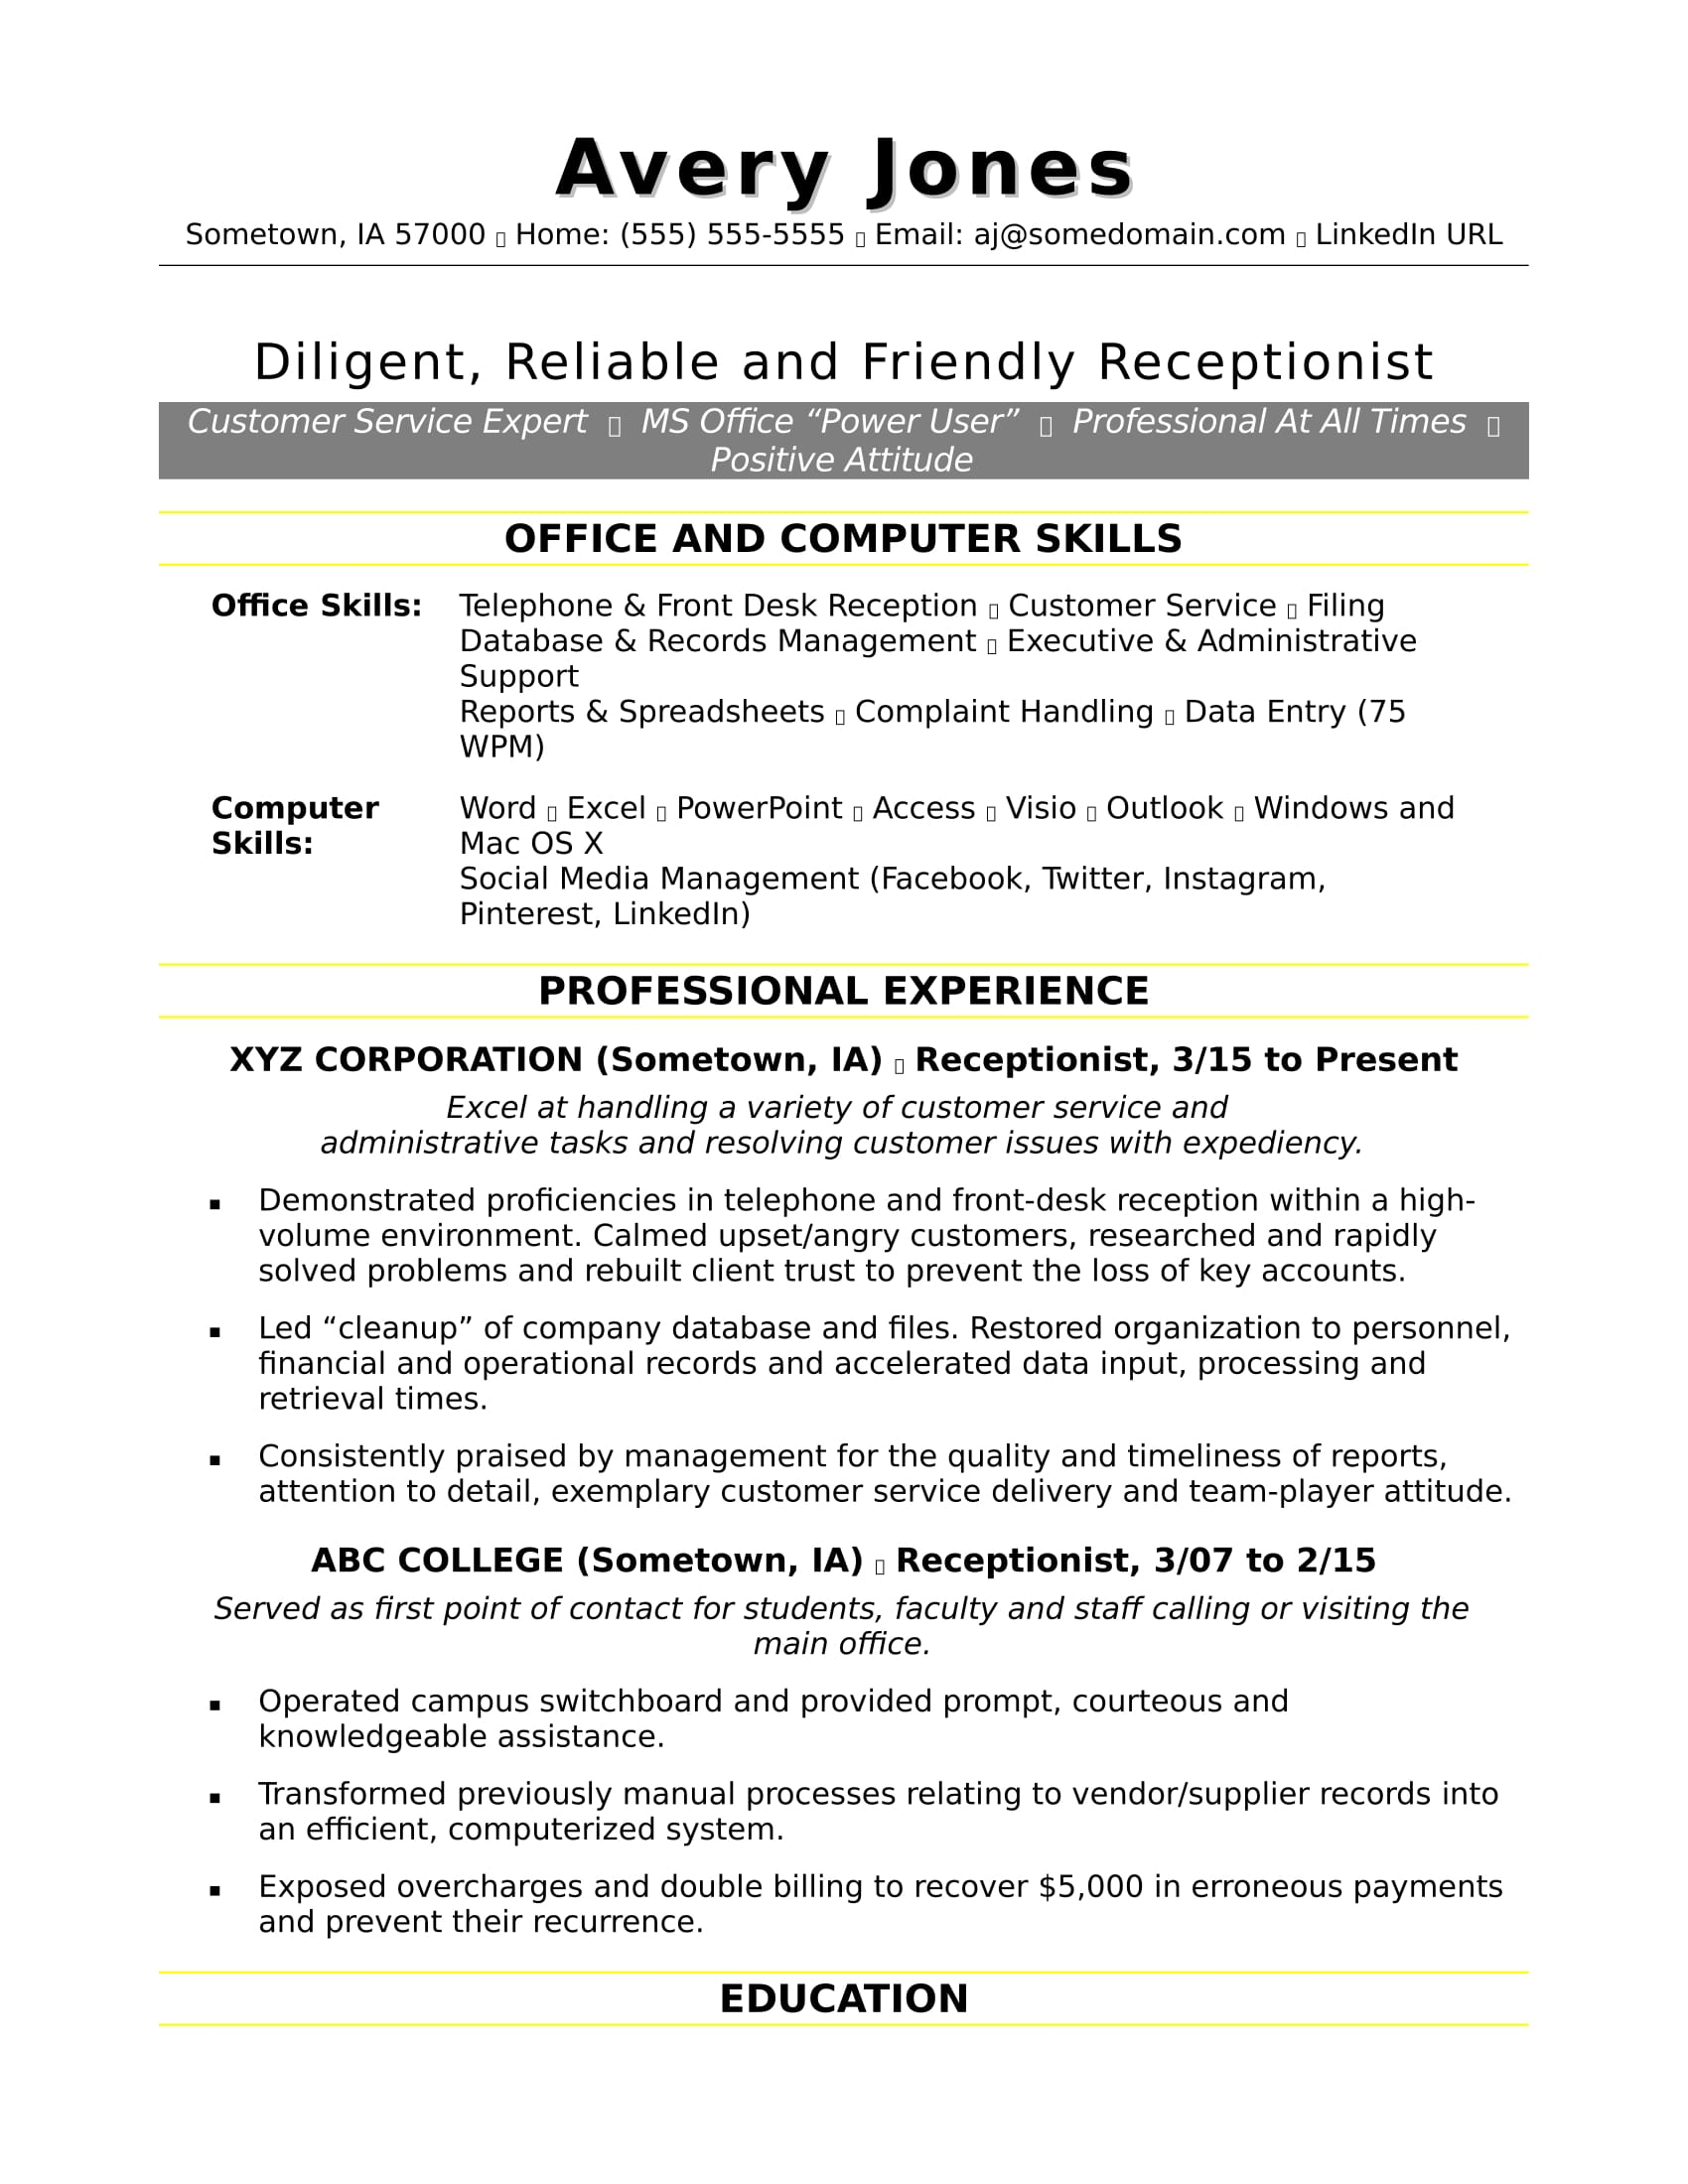 Elegant Sample Resume For A Receptionist Pertaining To Receptionist Resumes